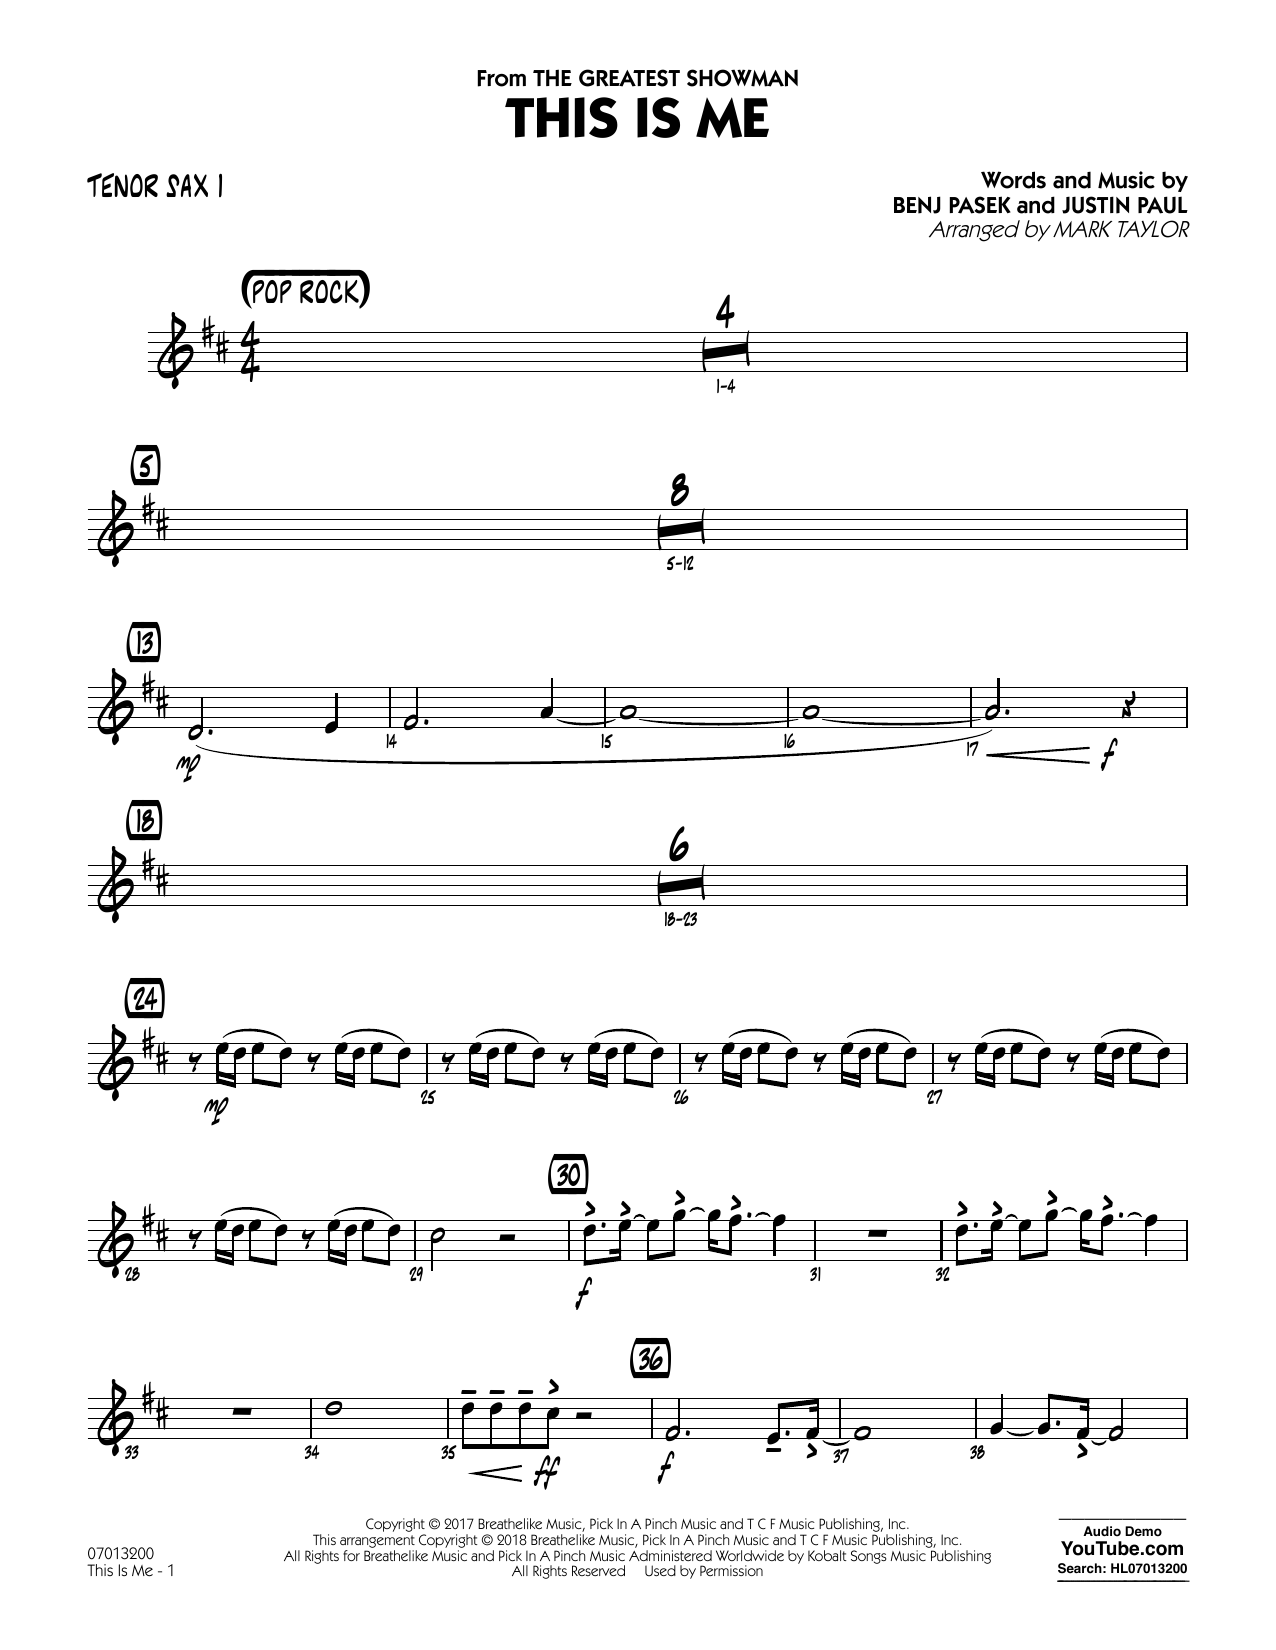 This Is Me (from The Greatest Showman) (arr. Mark Taylor) - Tenor Sax 1 (Jazz Ensemble)